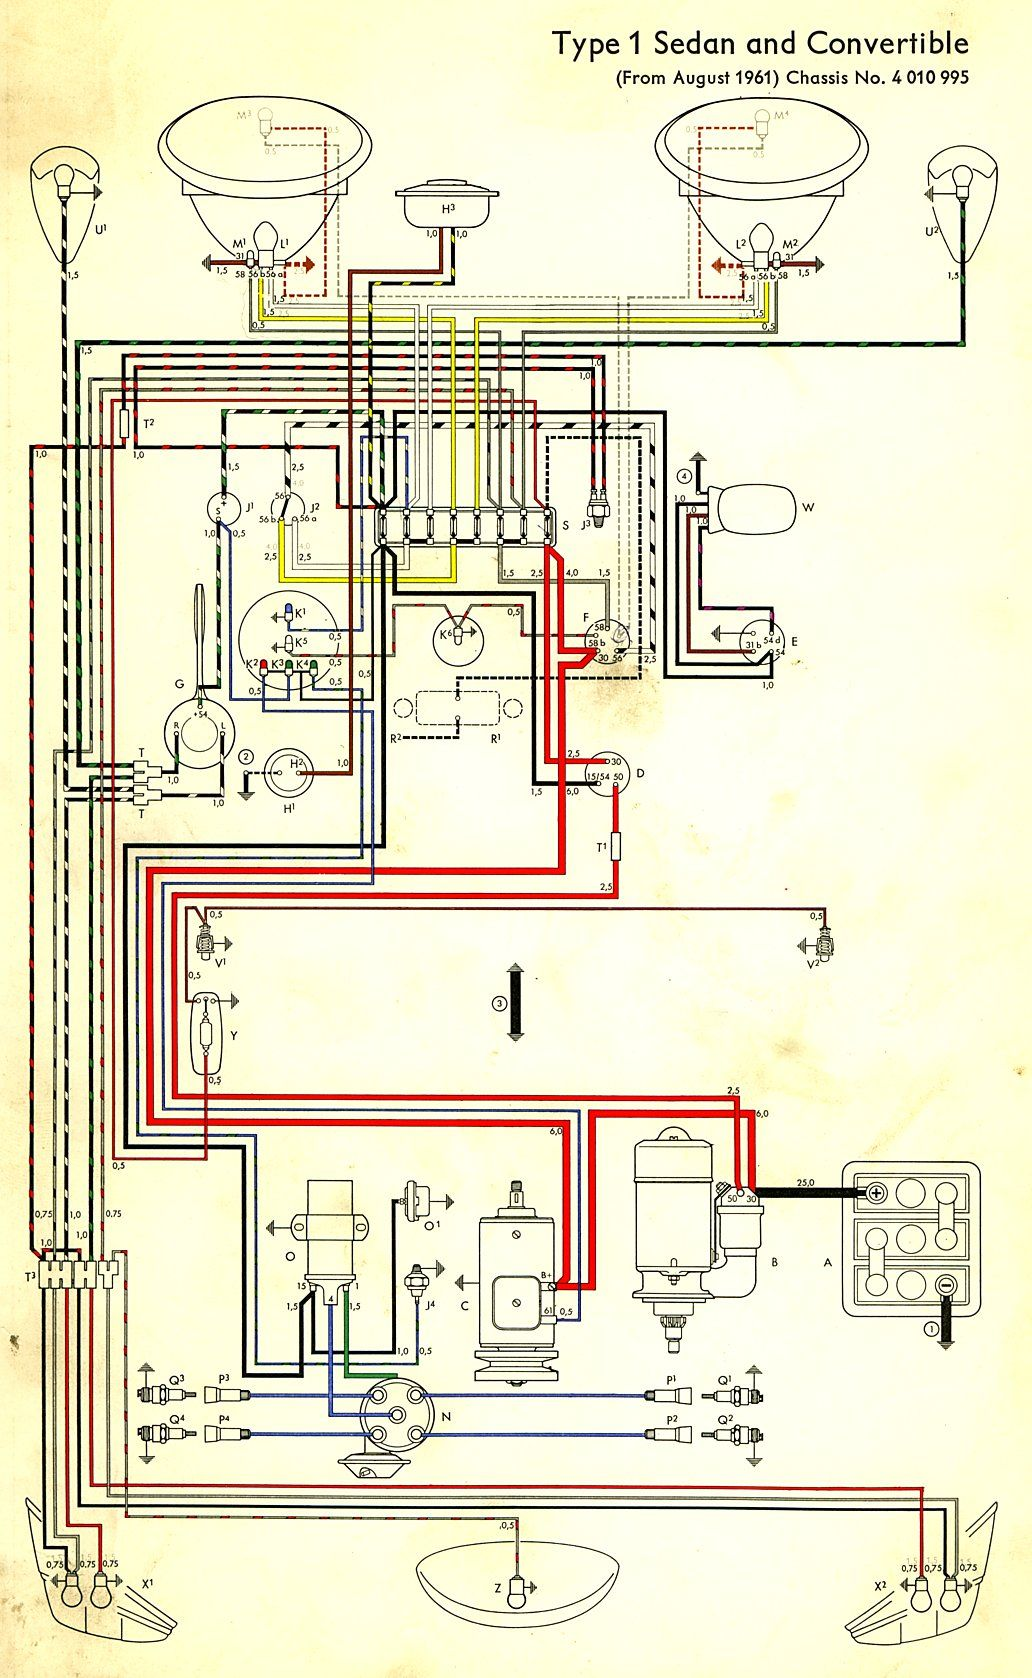 small resolution of 1966 vw beetle wiring harness wiring diagram inside 1974 vw beetle alternator wiring diagram 1966 vw